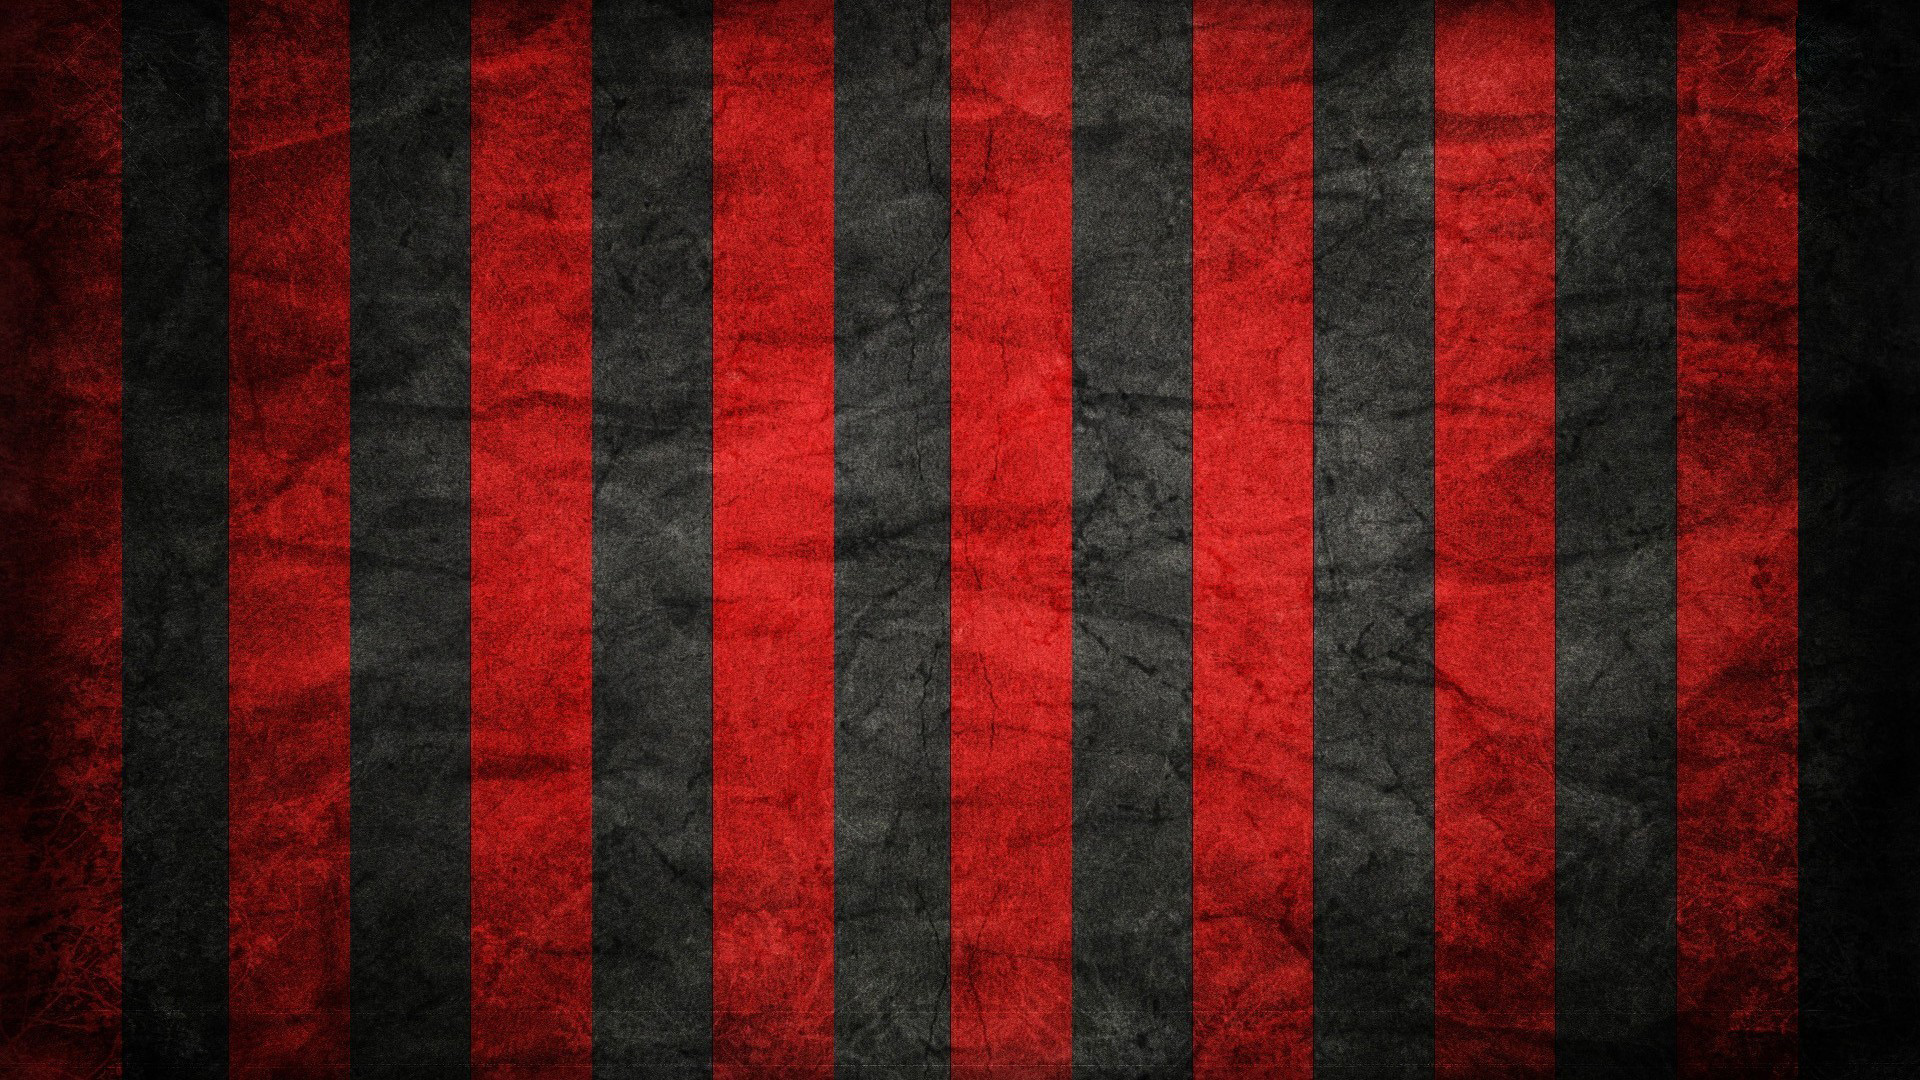 1920x1080 Red Wallpapers Desktop Background